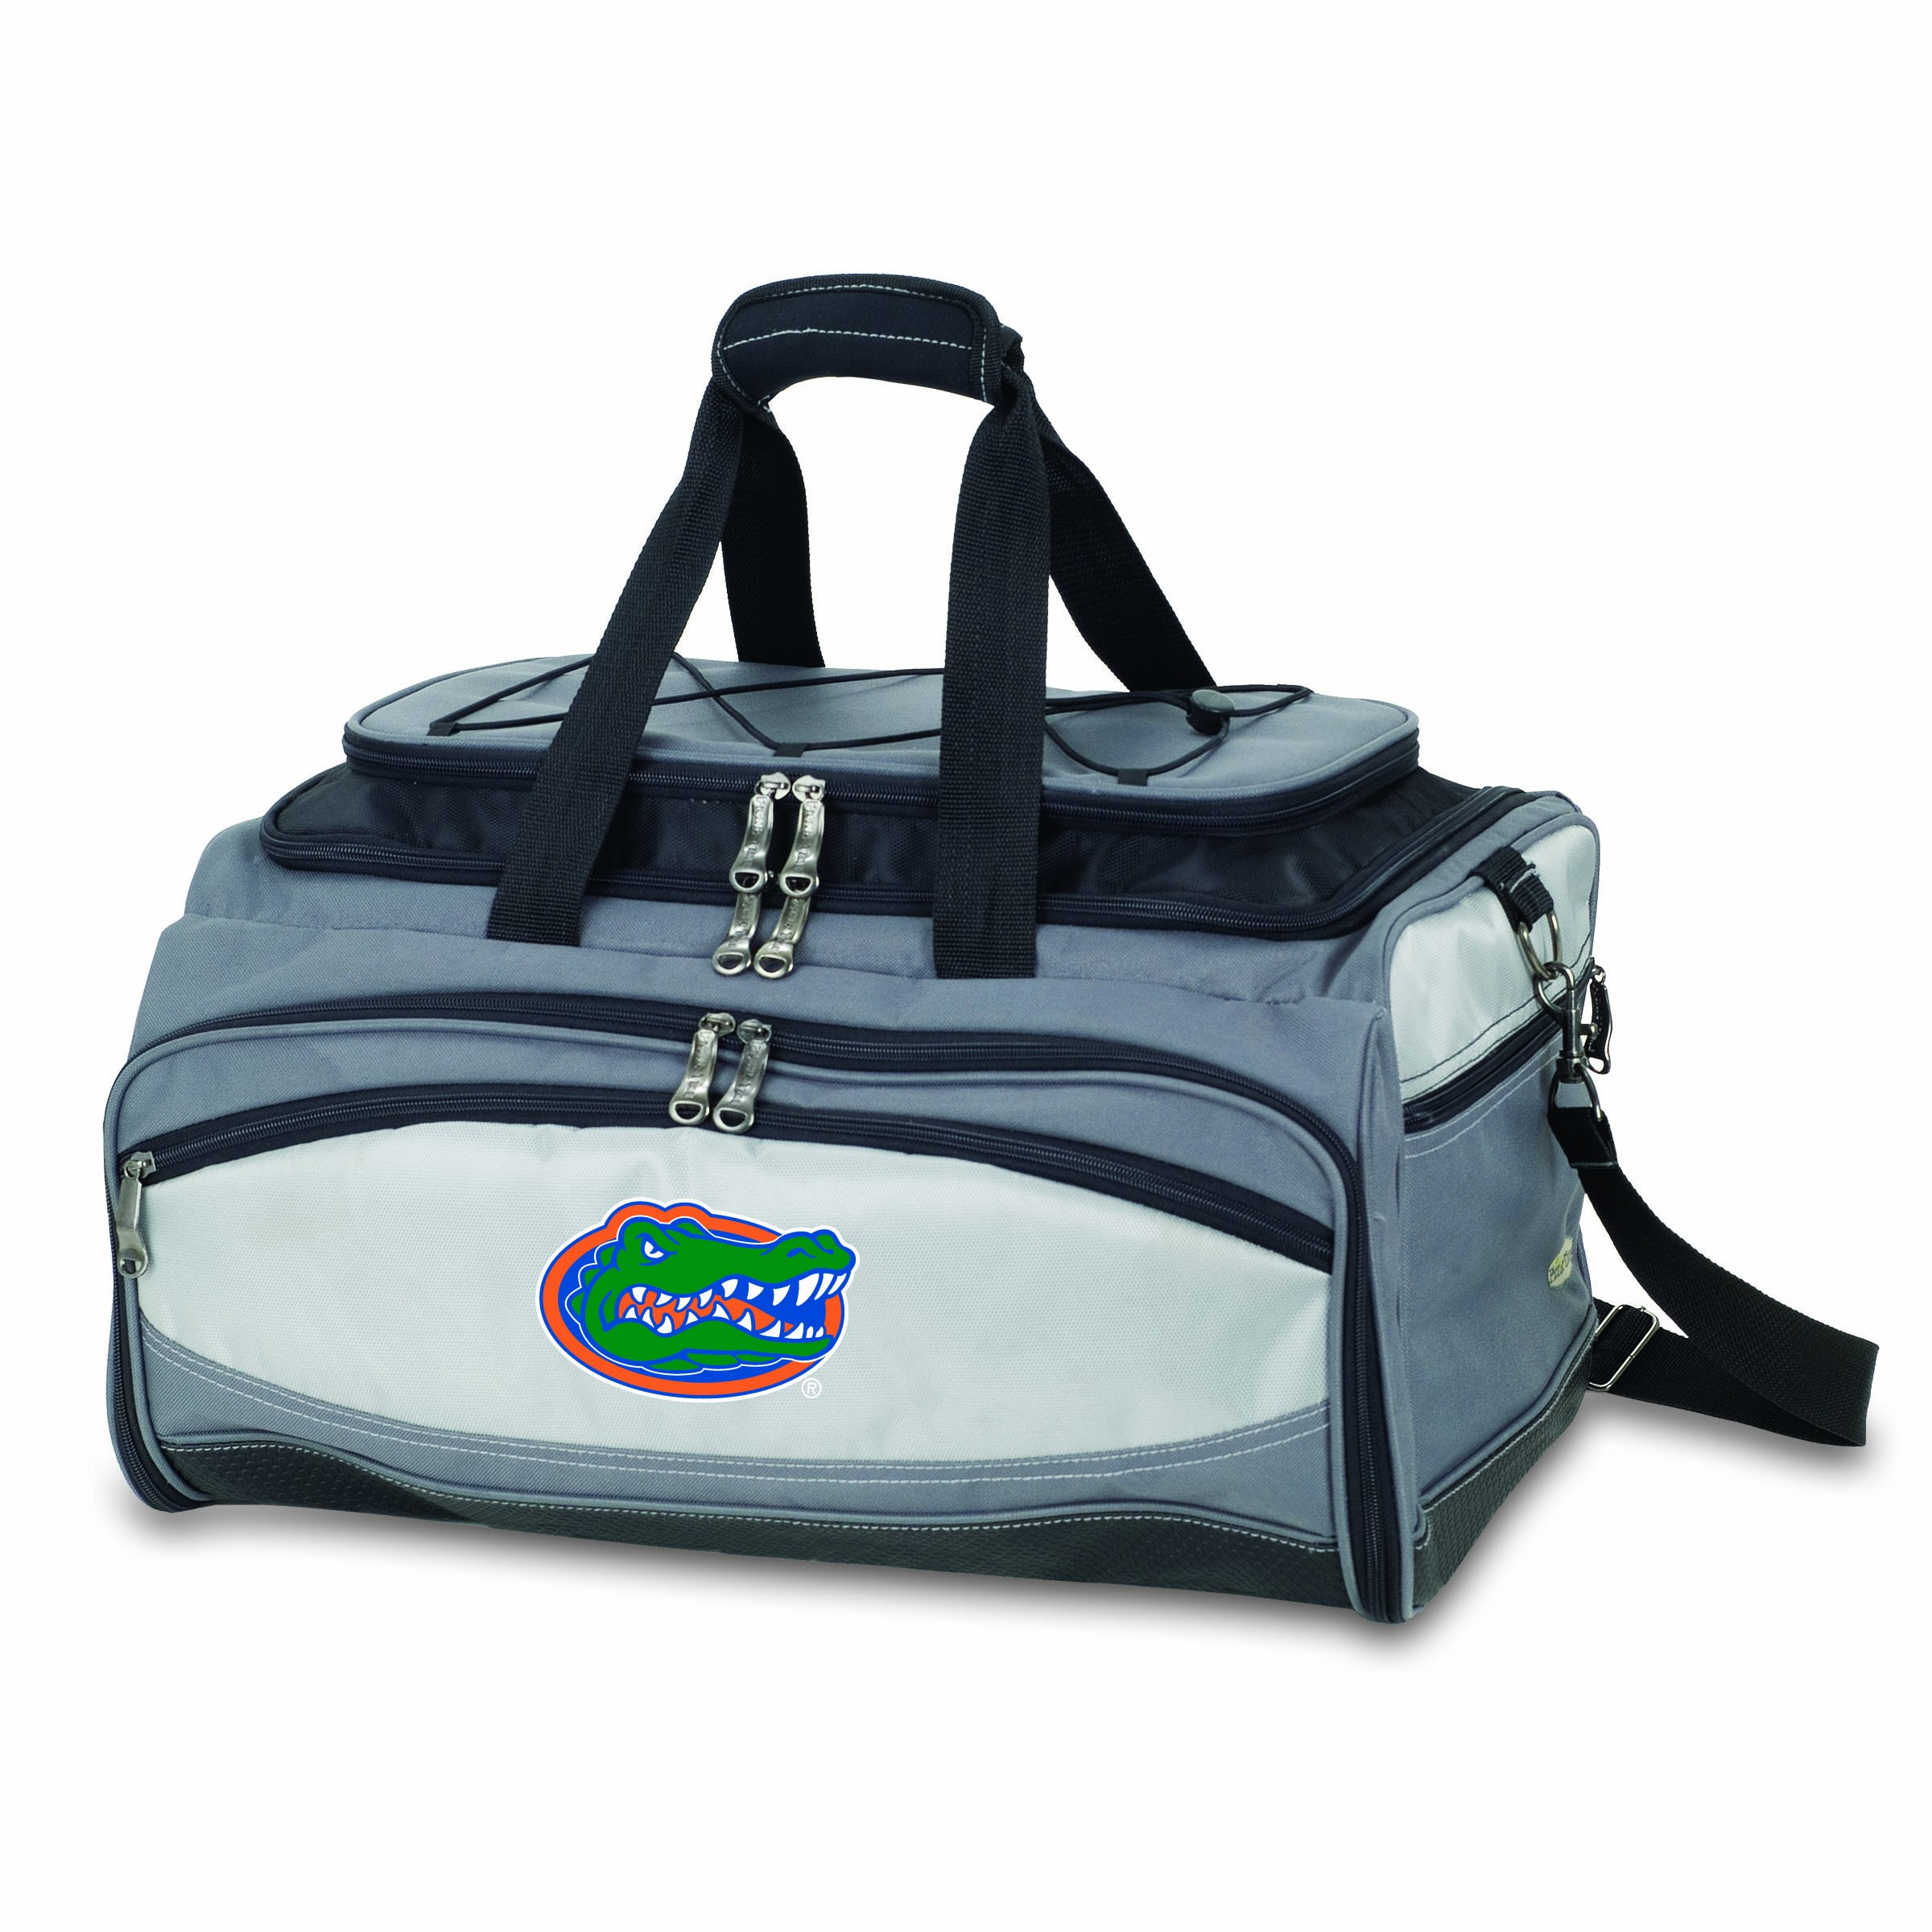 NCAA Florida Gators Buccaneer Tailgating Cooler with Grill